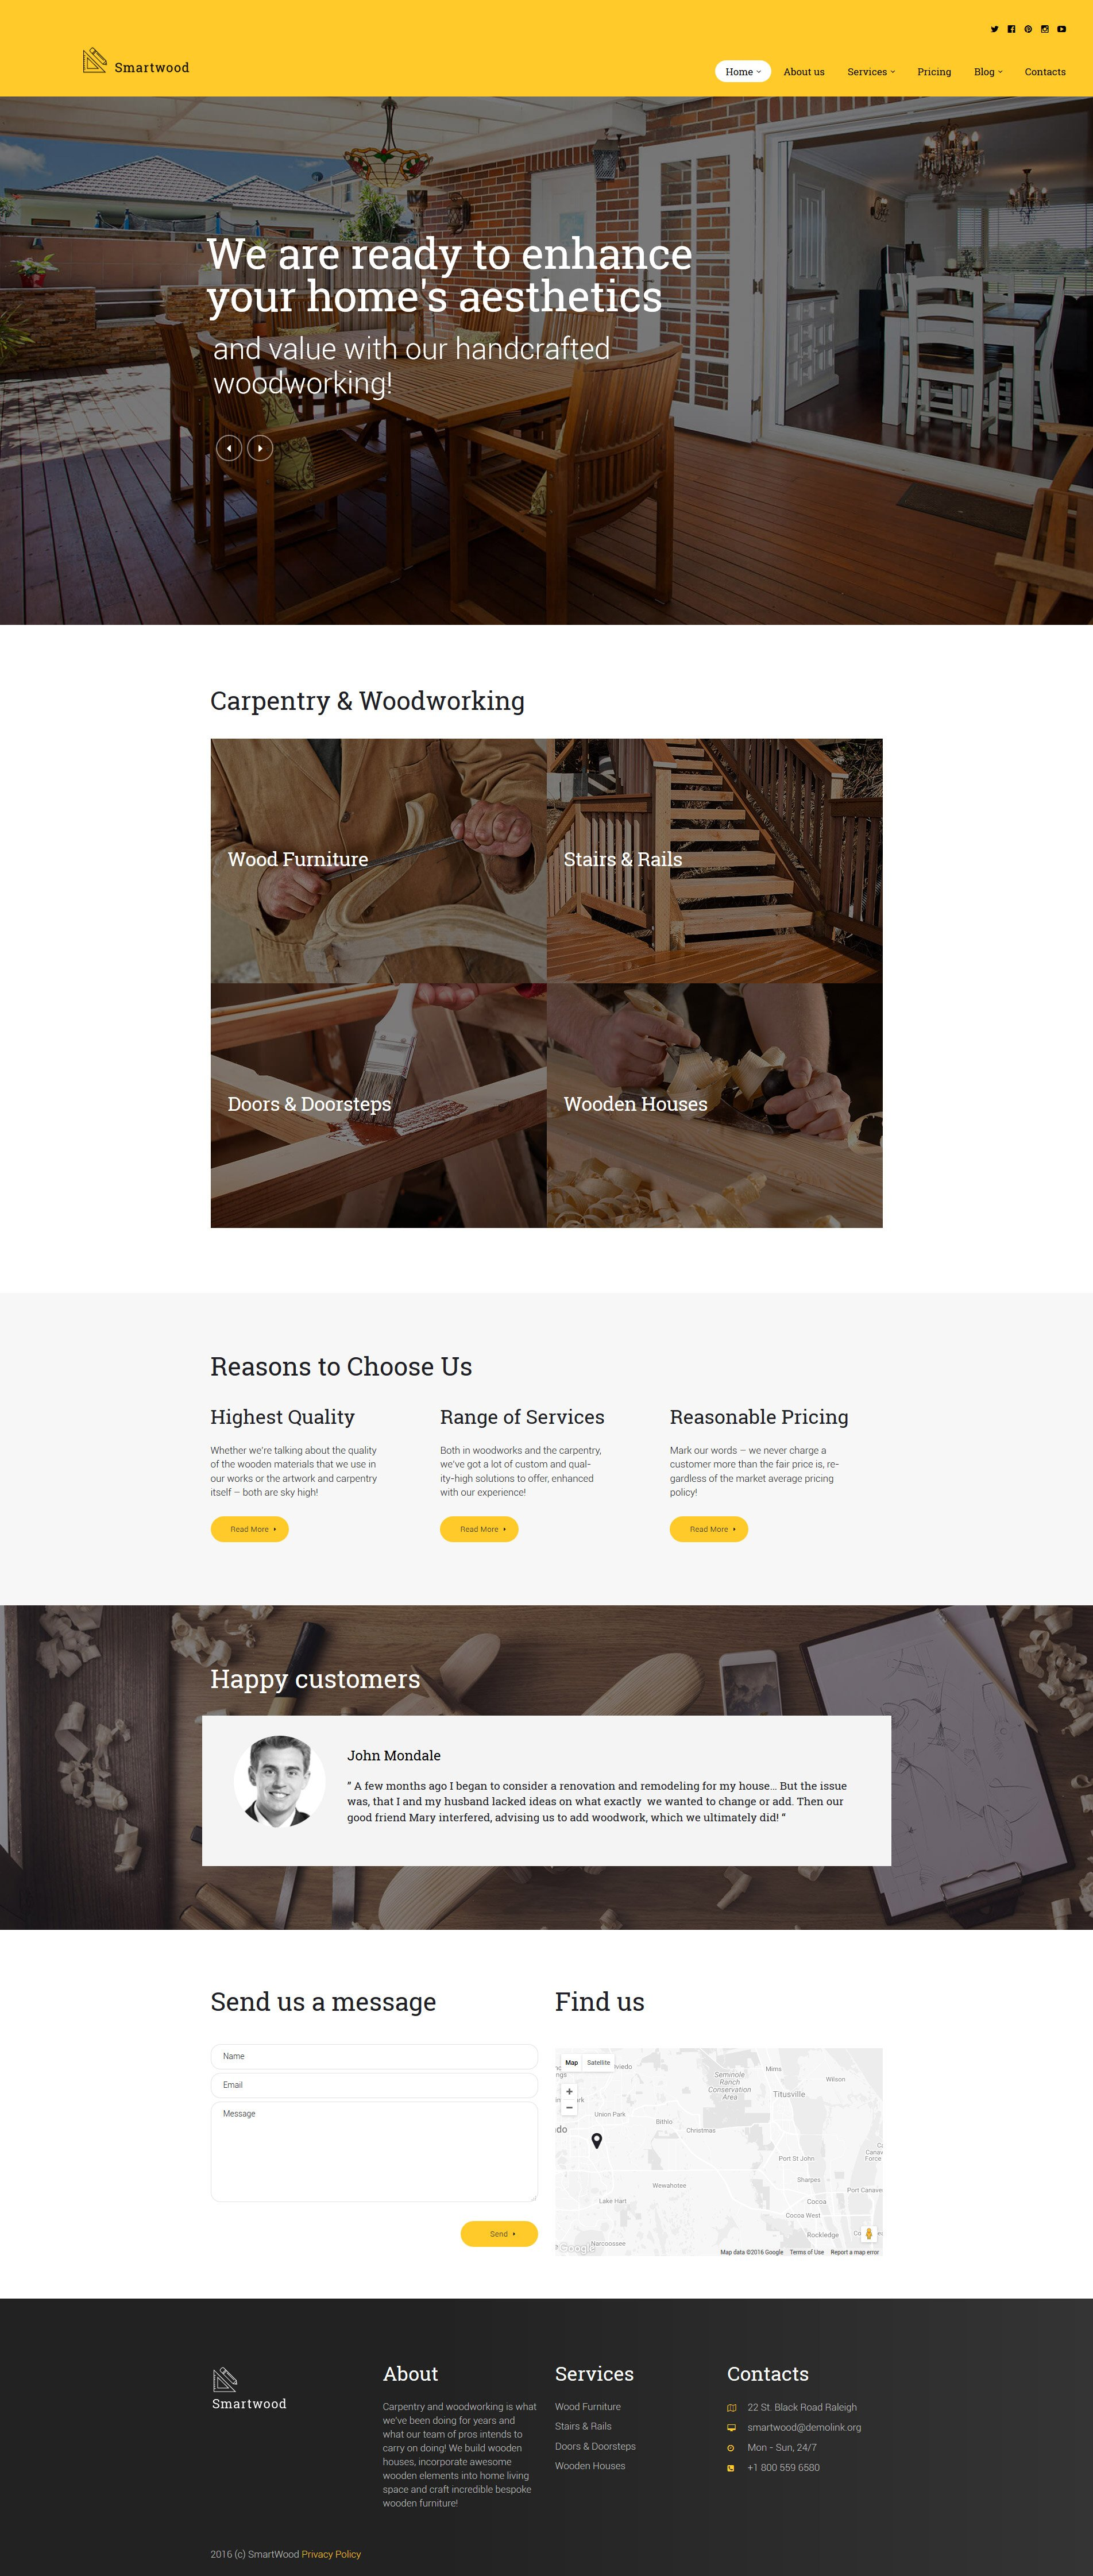 Smartwood - Carpentry & Woodworking Tema WordPress №61365